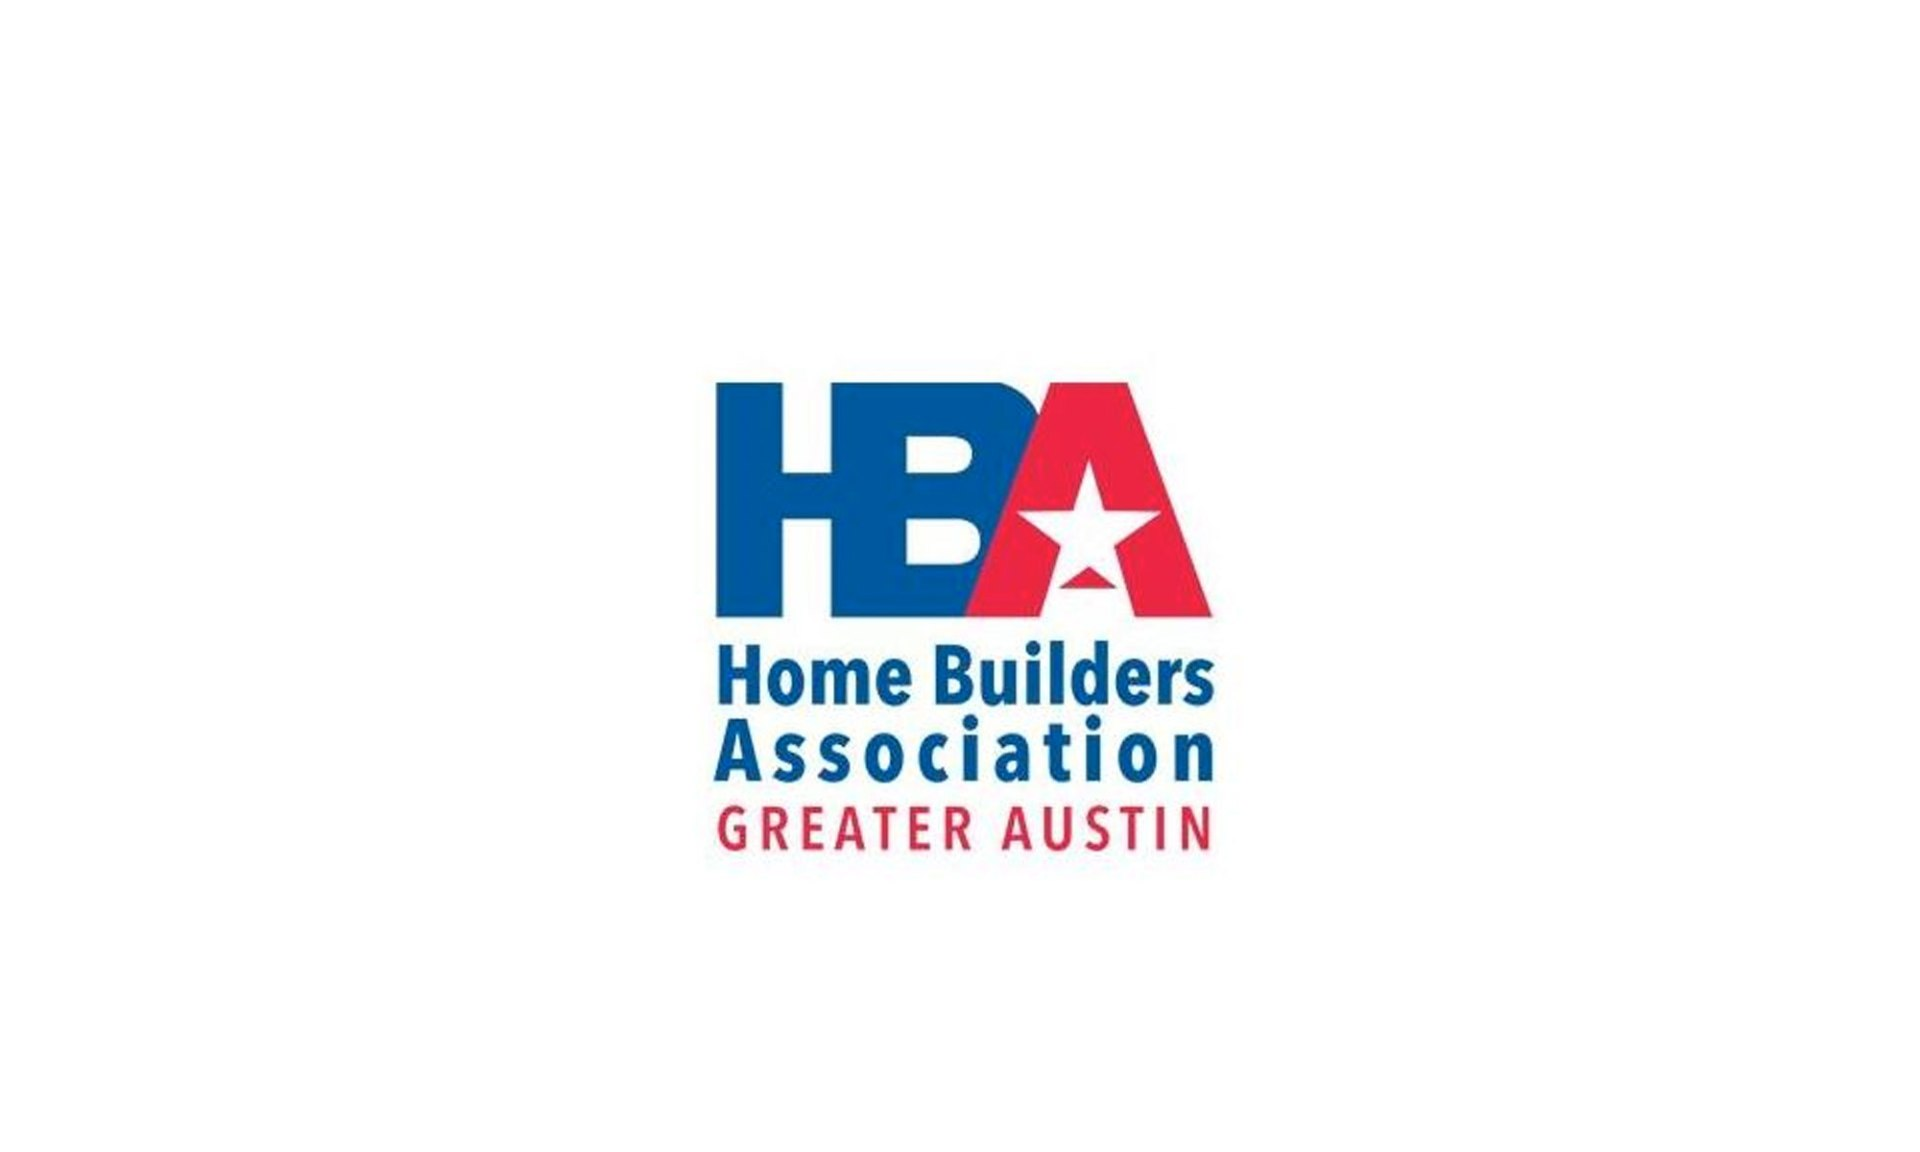 Home Builders Association Greater Austin